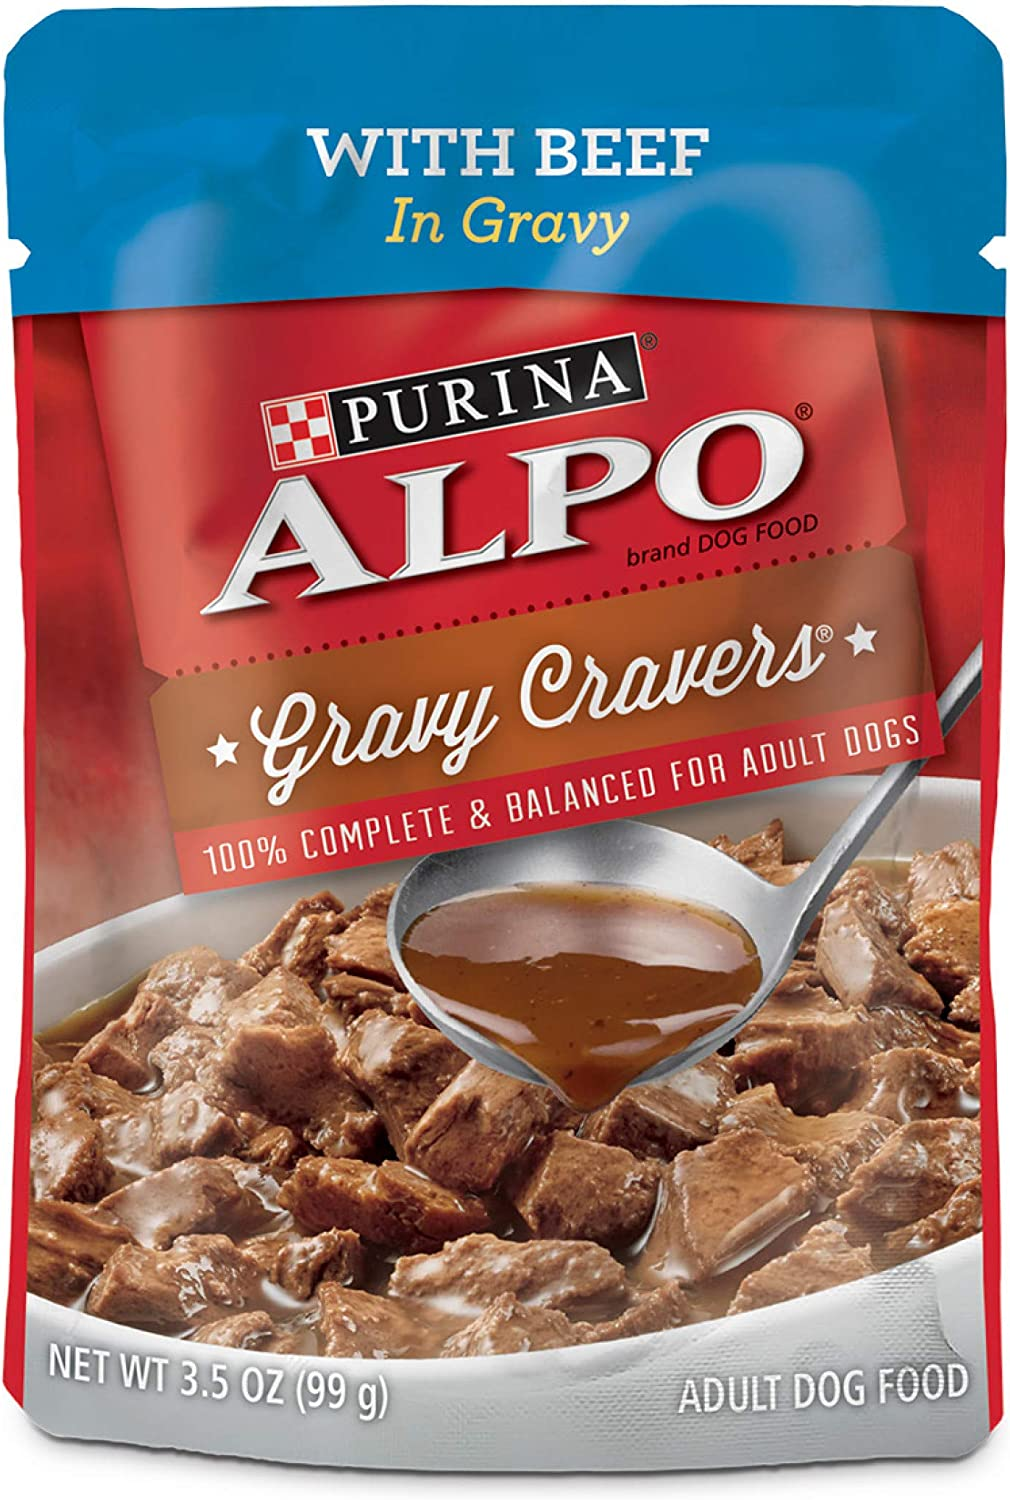 Purina ALPO Brand Dog Food Dog Food